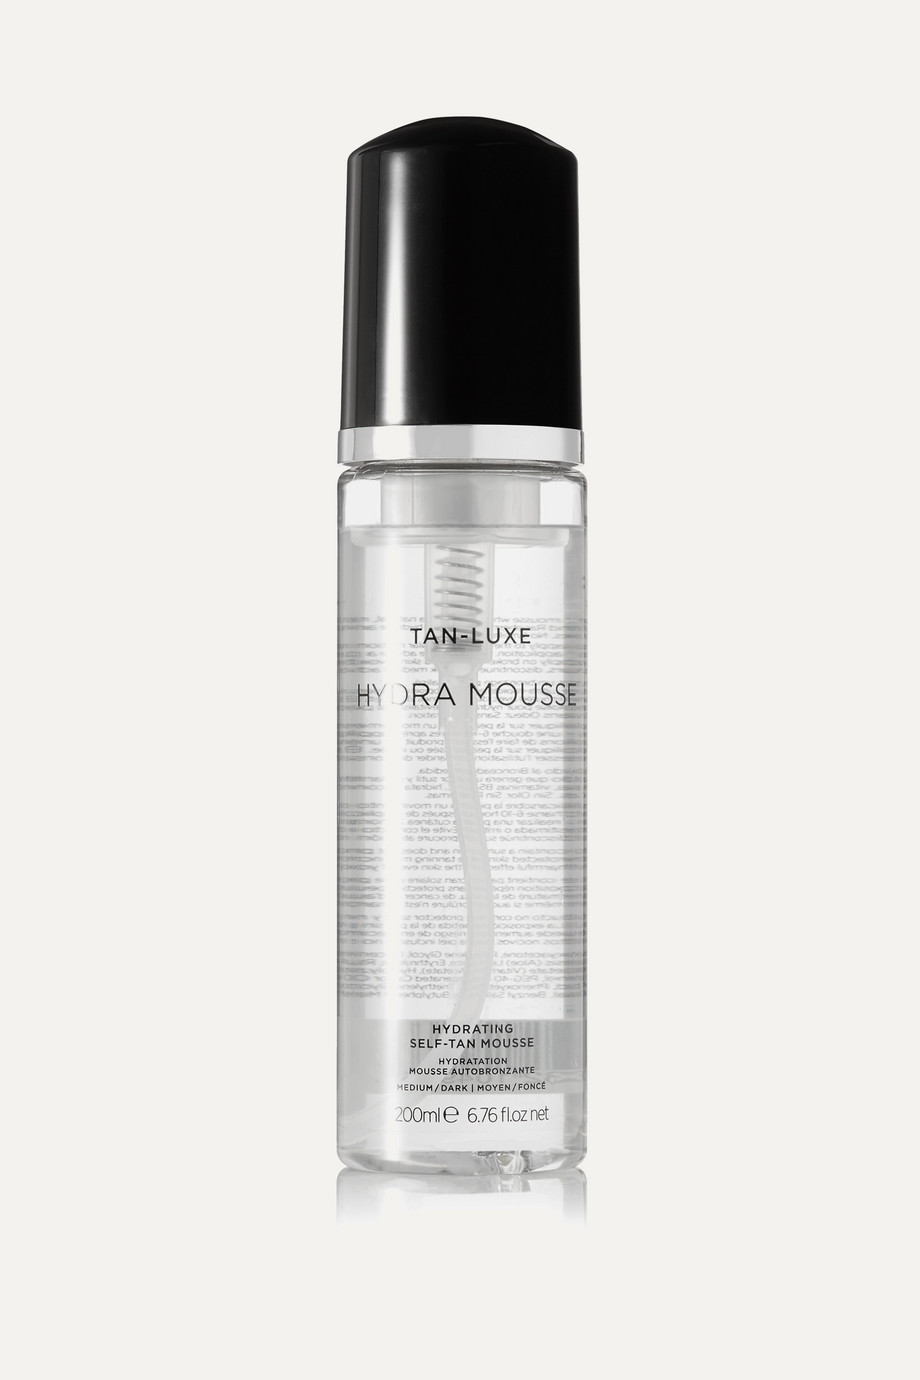 TAN-LUXE Hydra-Mousse Hydrating Self-Tan Mousse - Medium/Dark, 200ml